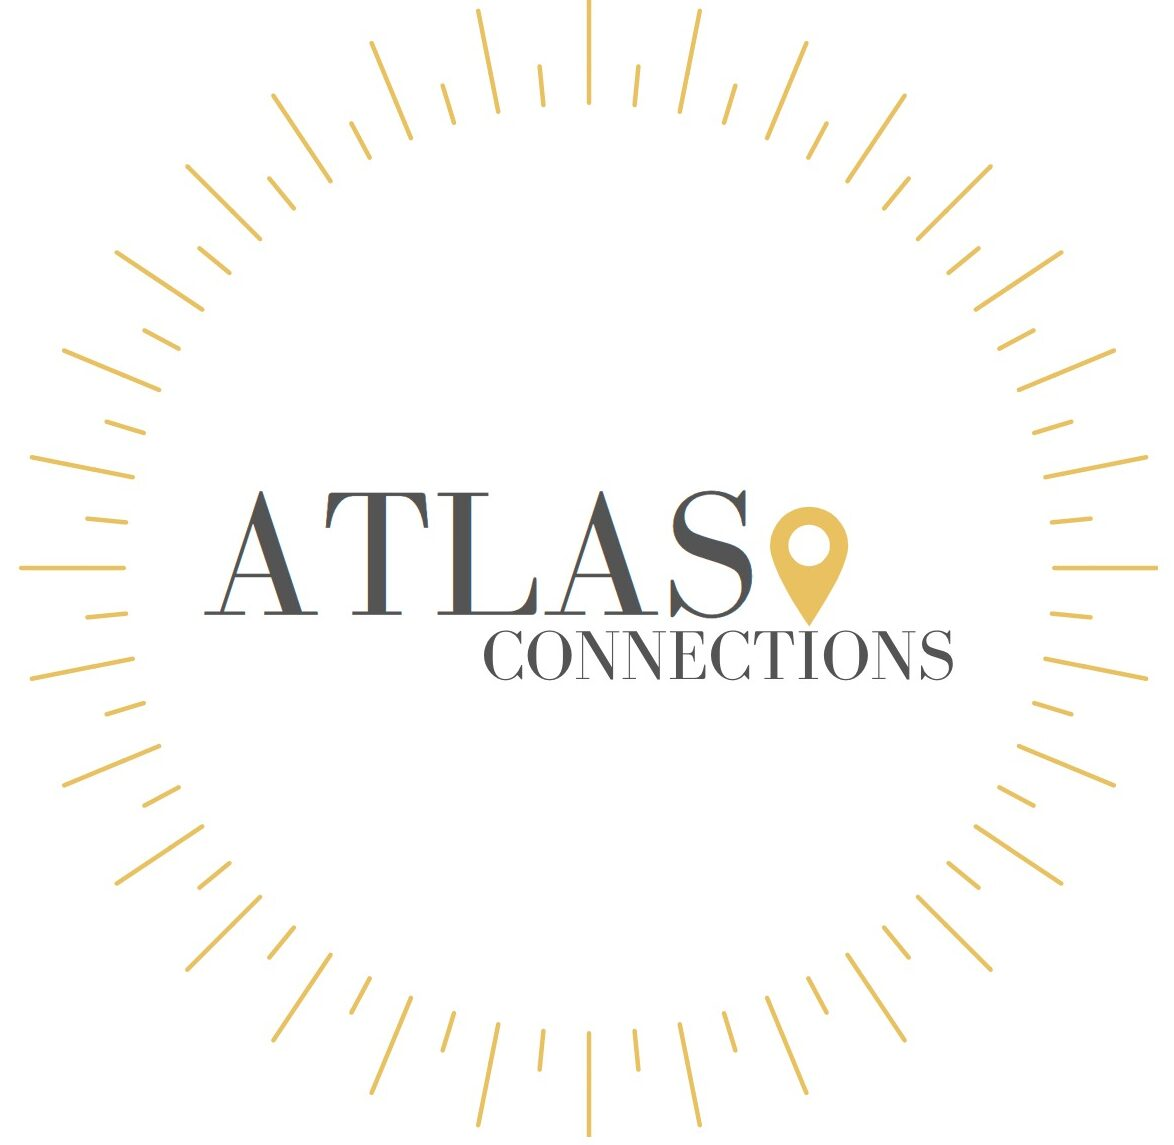 Atlas Connections